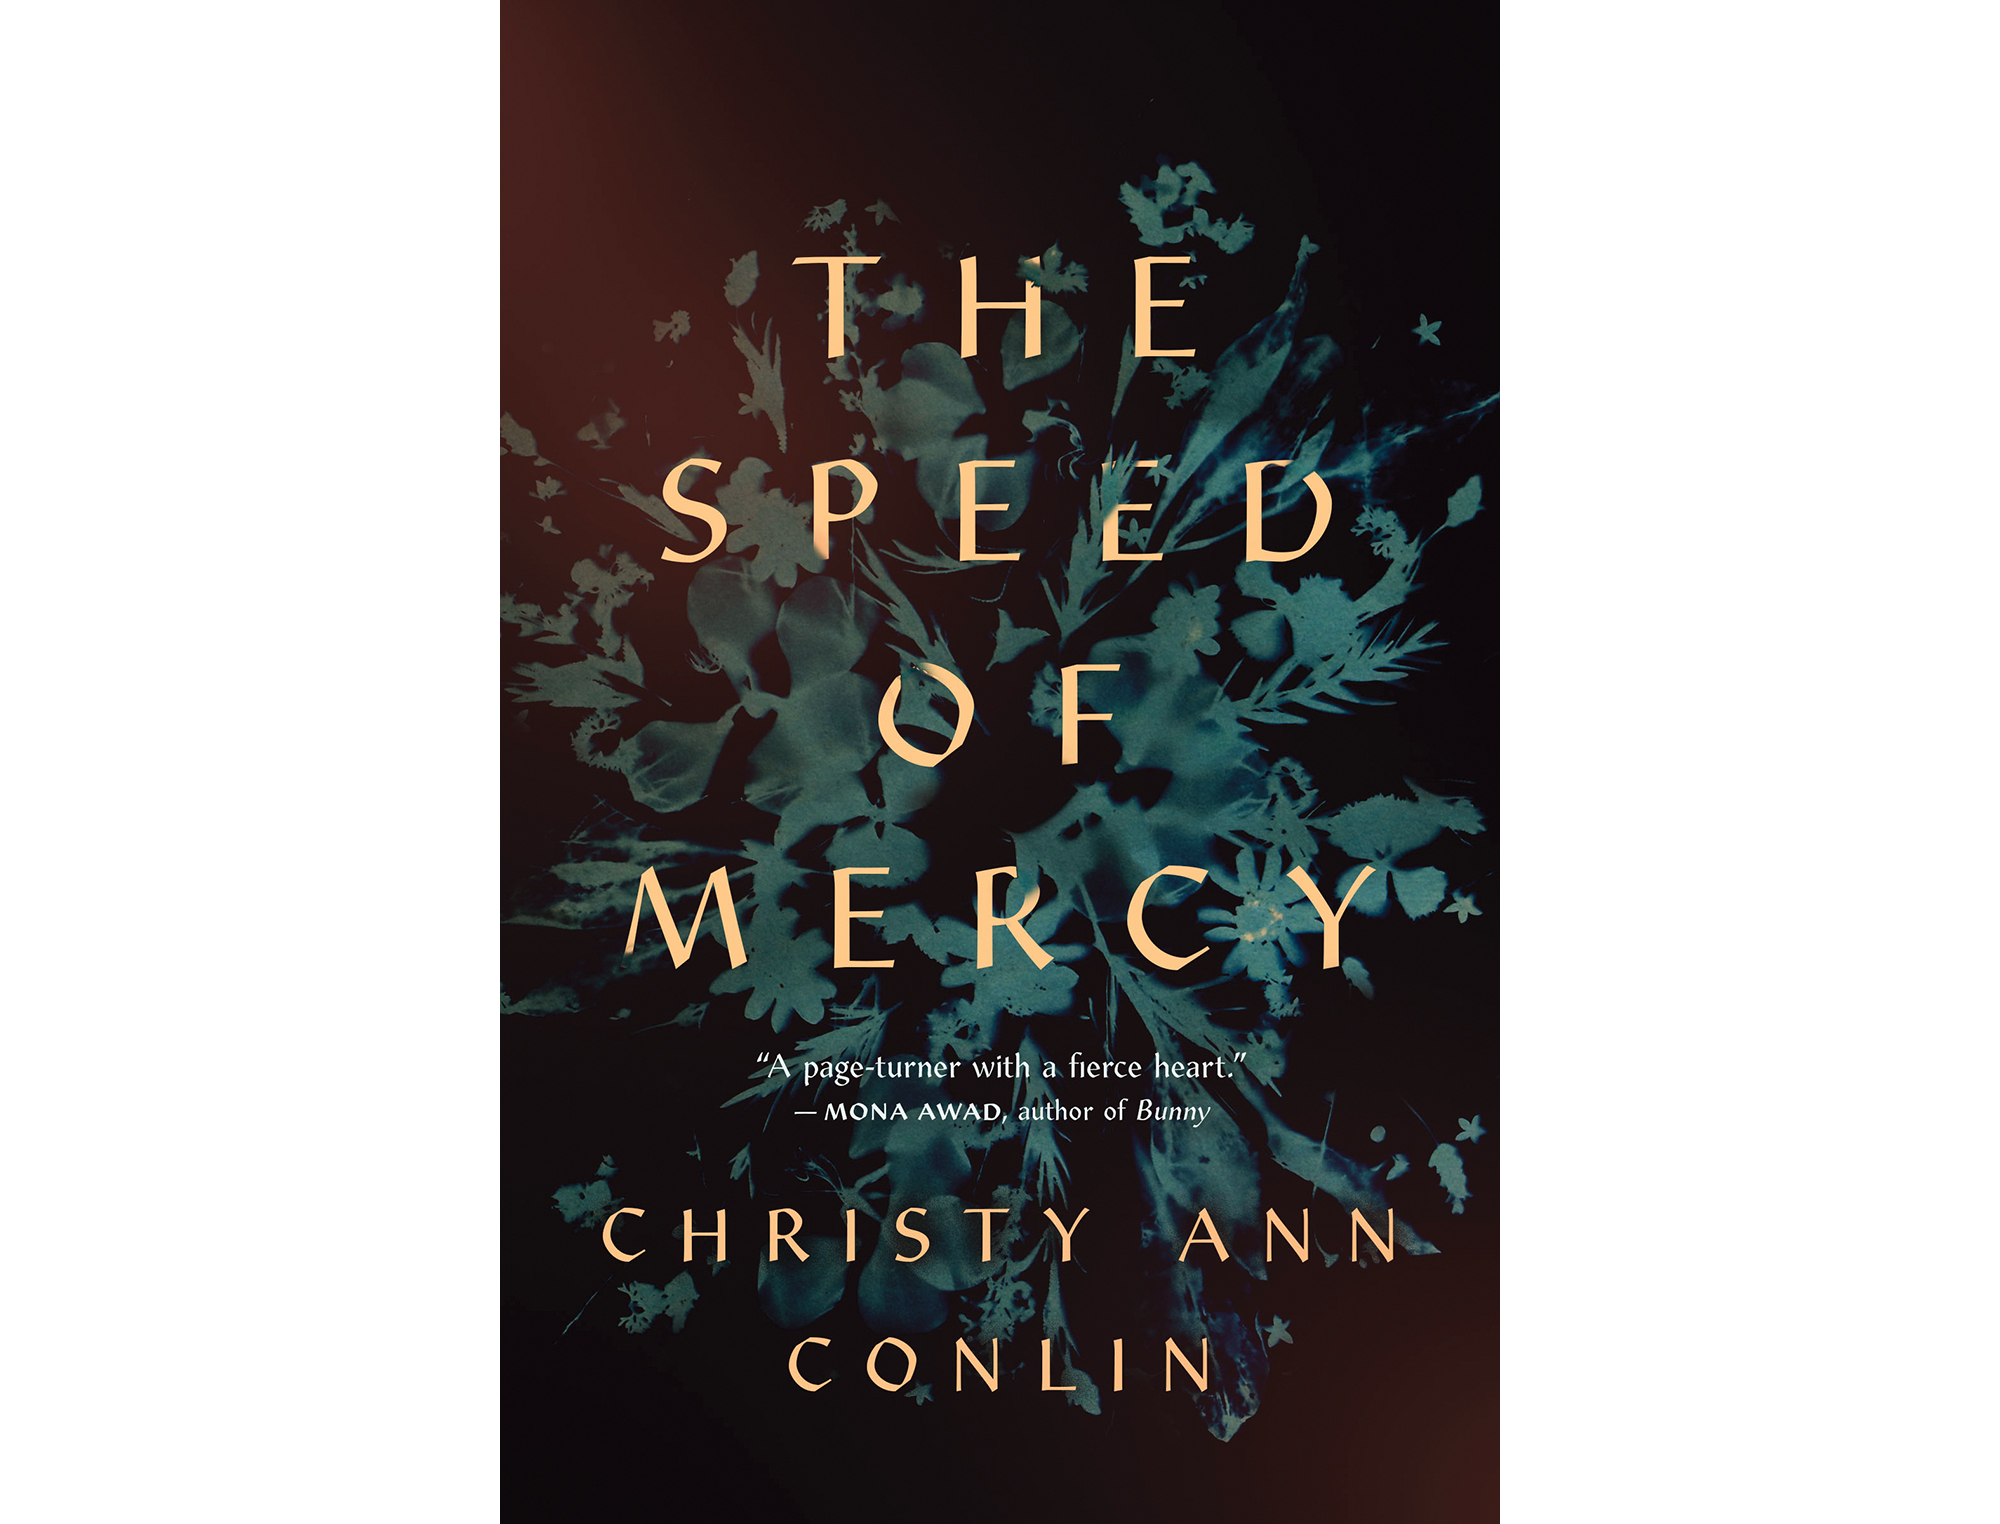 The cover of Christy Ann Conlin's The Speed of Mercy